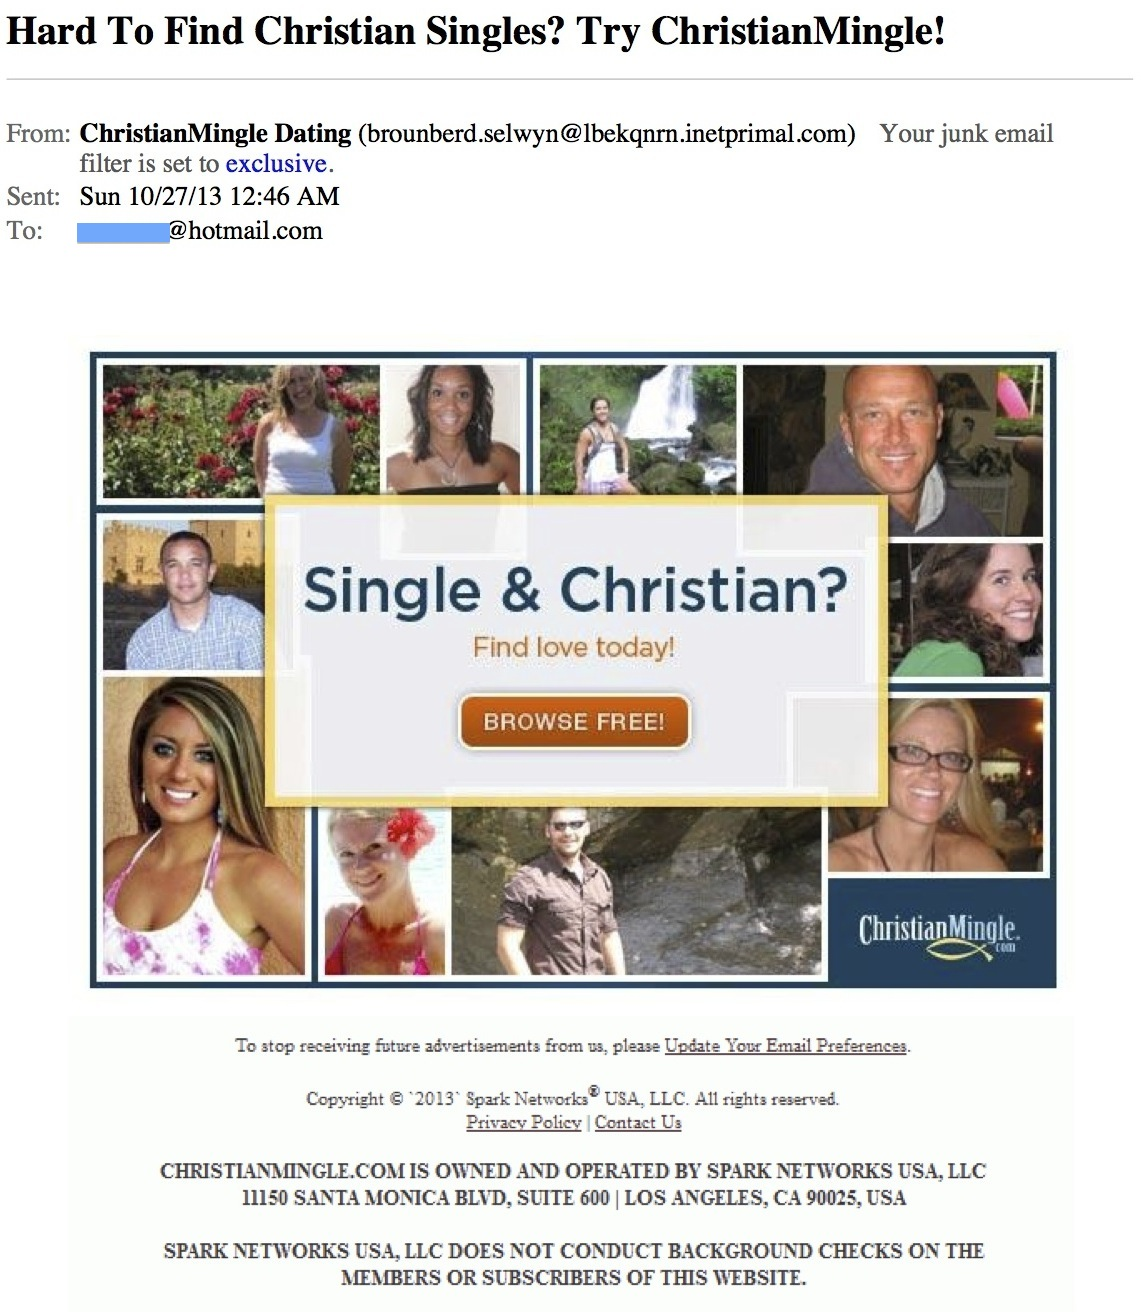 ihlen christian dating site Christian singles dating site - online dating is easy and simple, all you need to do is register to our site and start browsing single people profiles, chat online with people you'd like to meet.